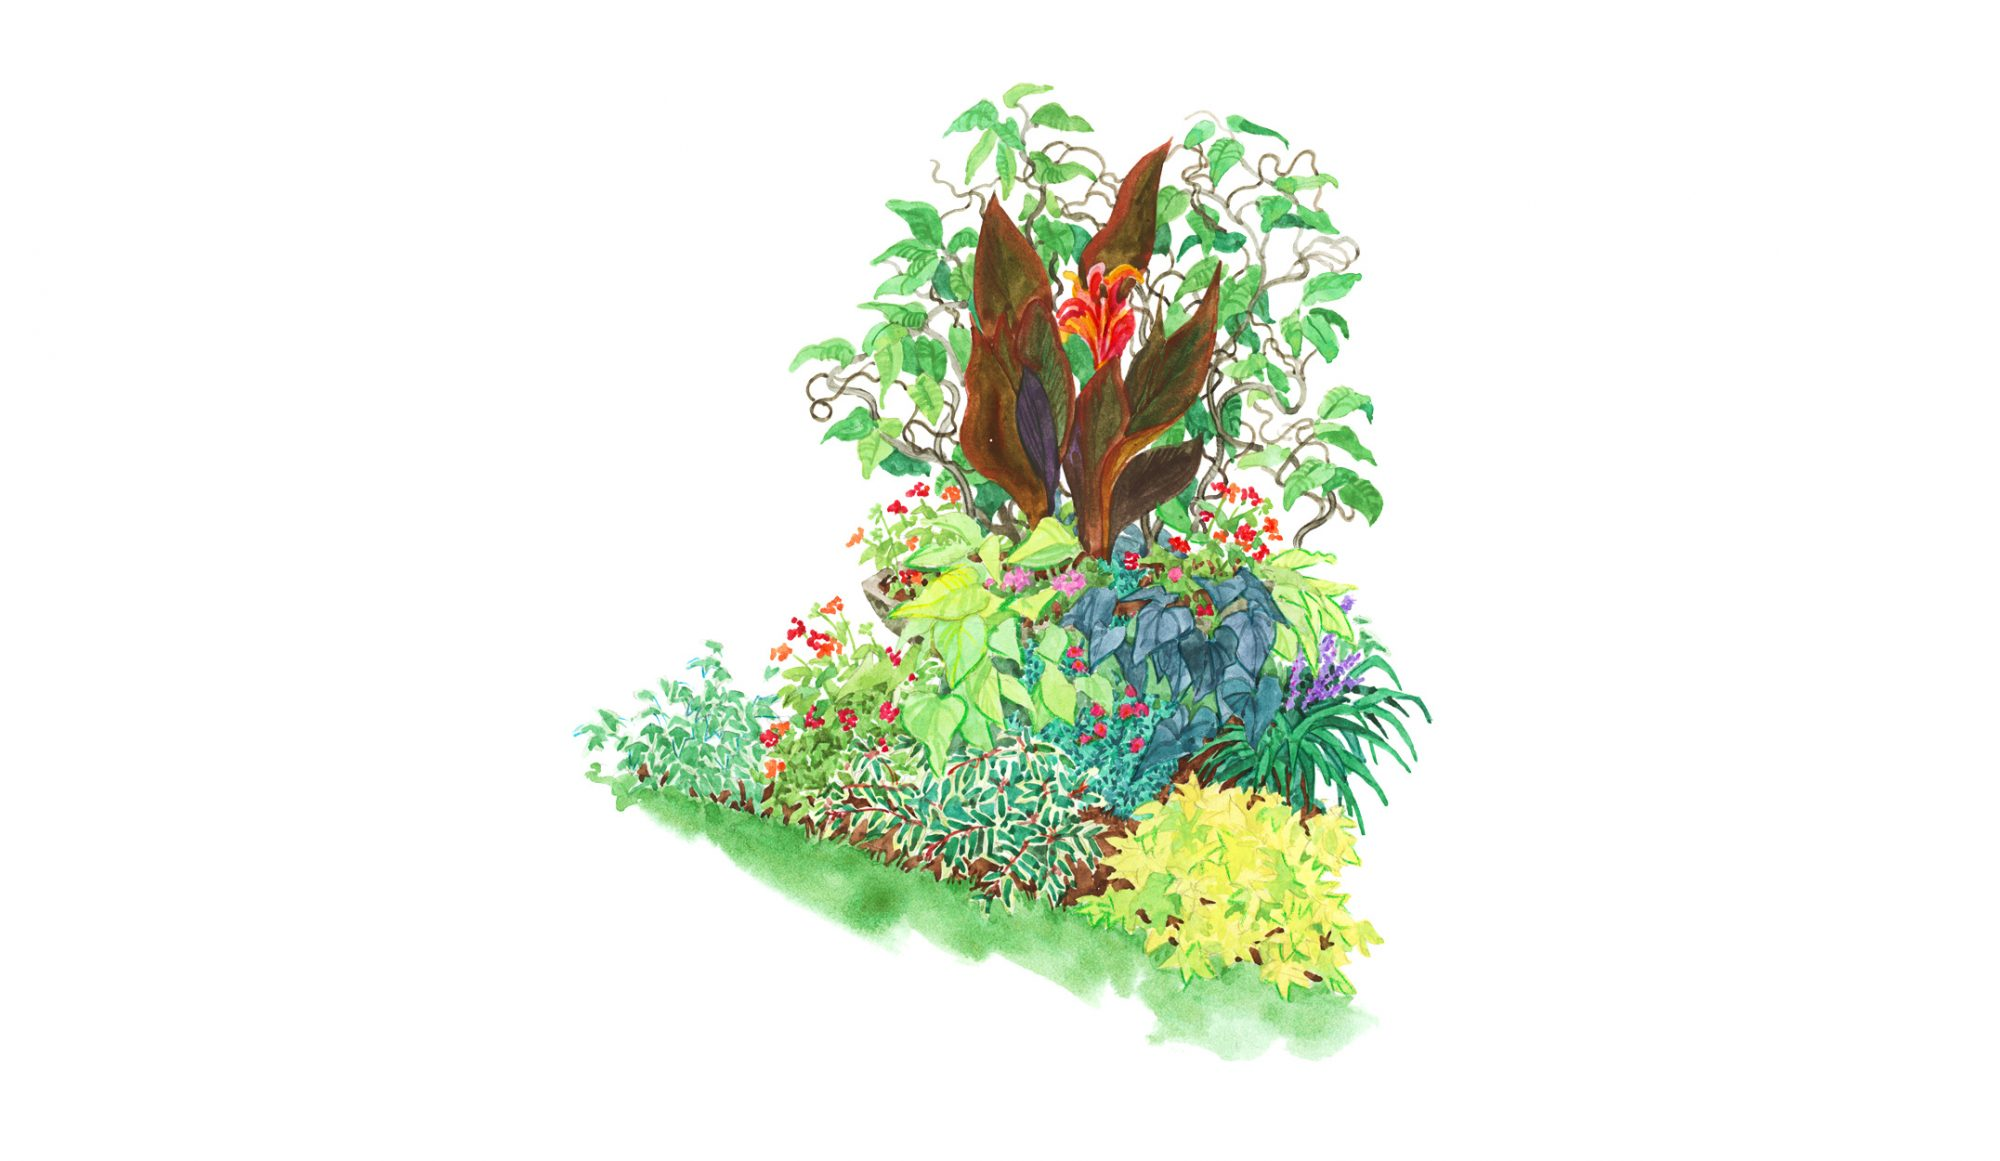 Tropical-Look Garden Plan illustration